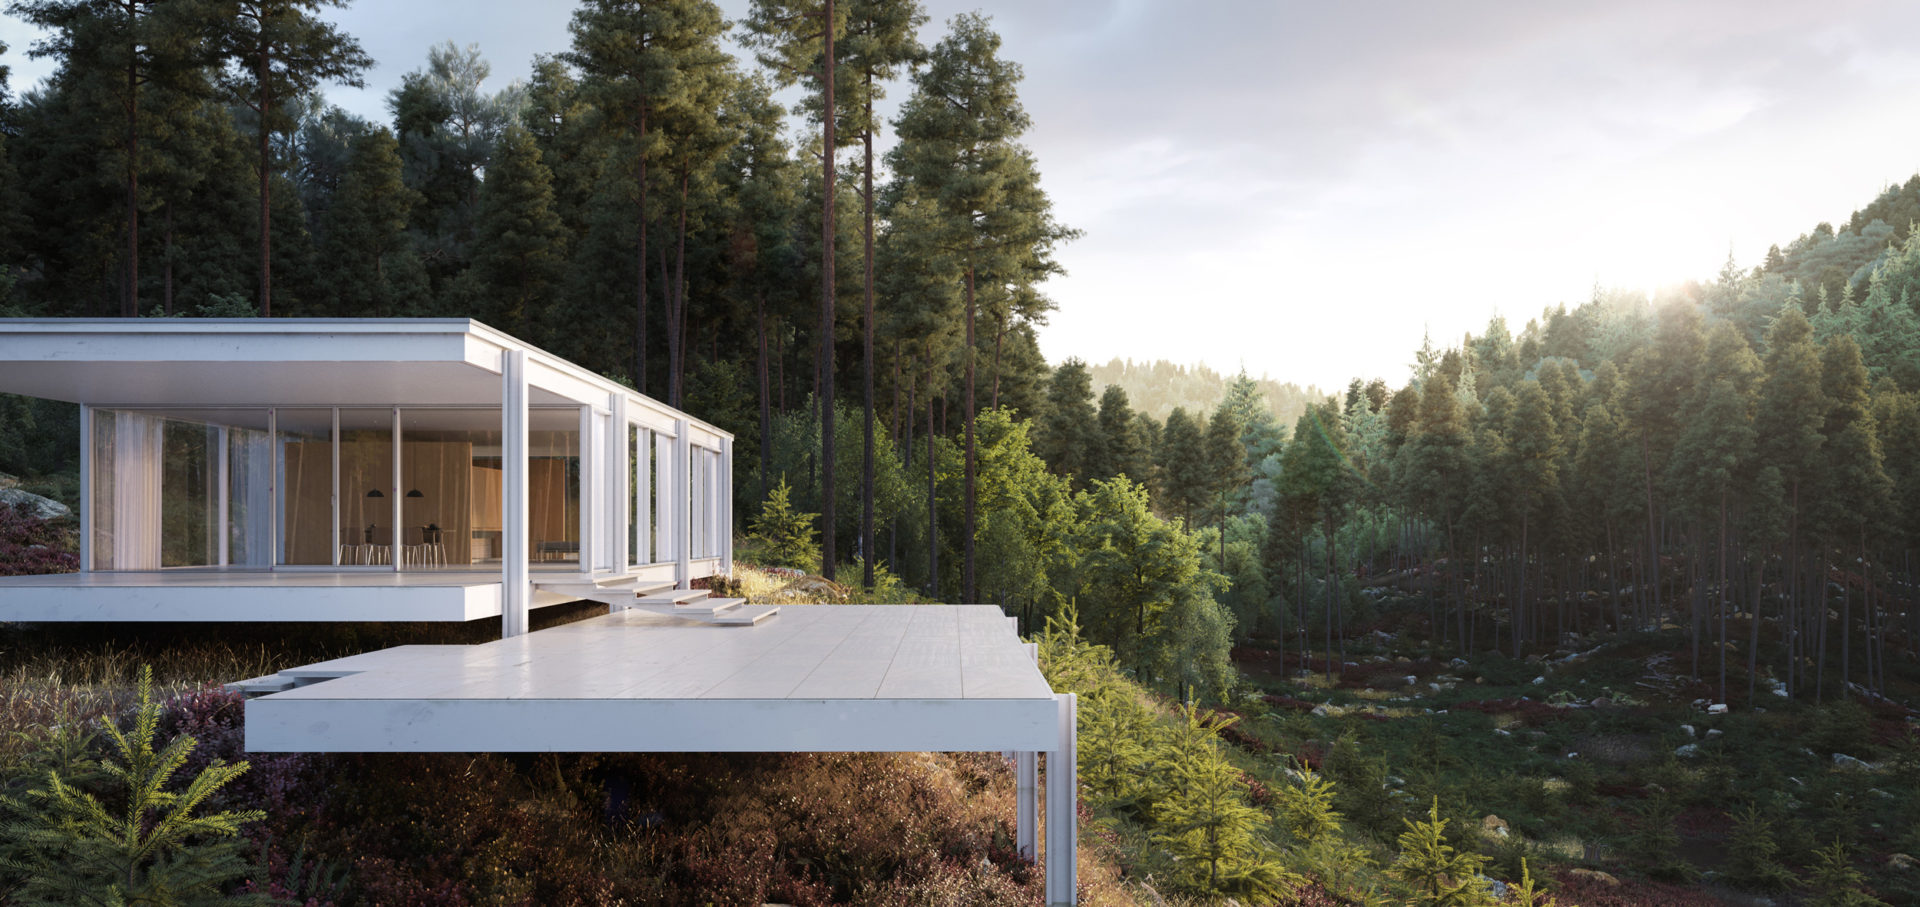 You Can Book Me Ltd Farnsworth House Full Cg Showcase Ronen Bekerman 3d